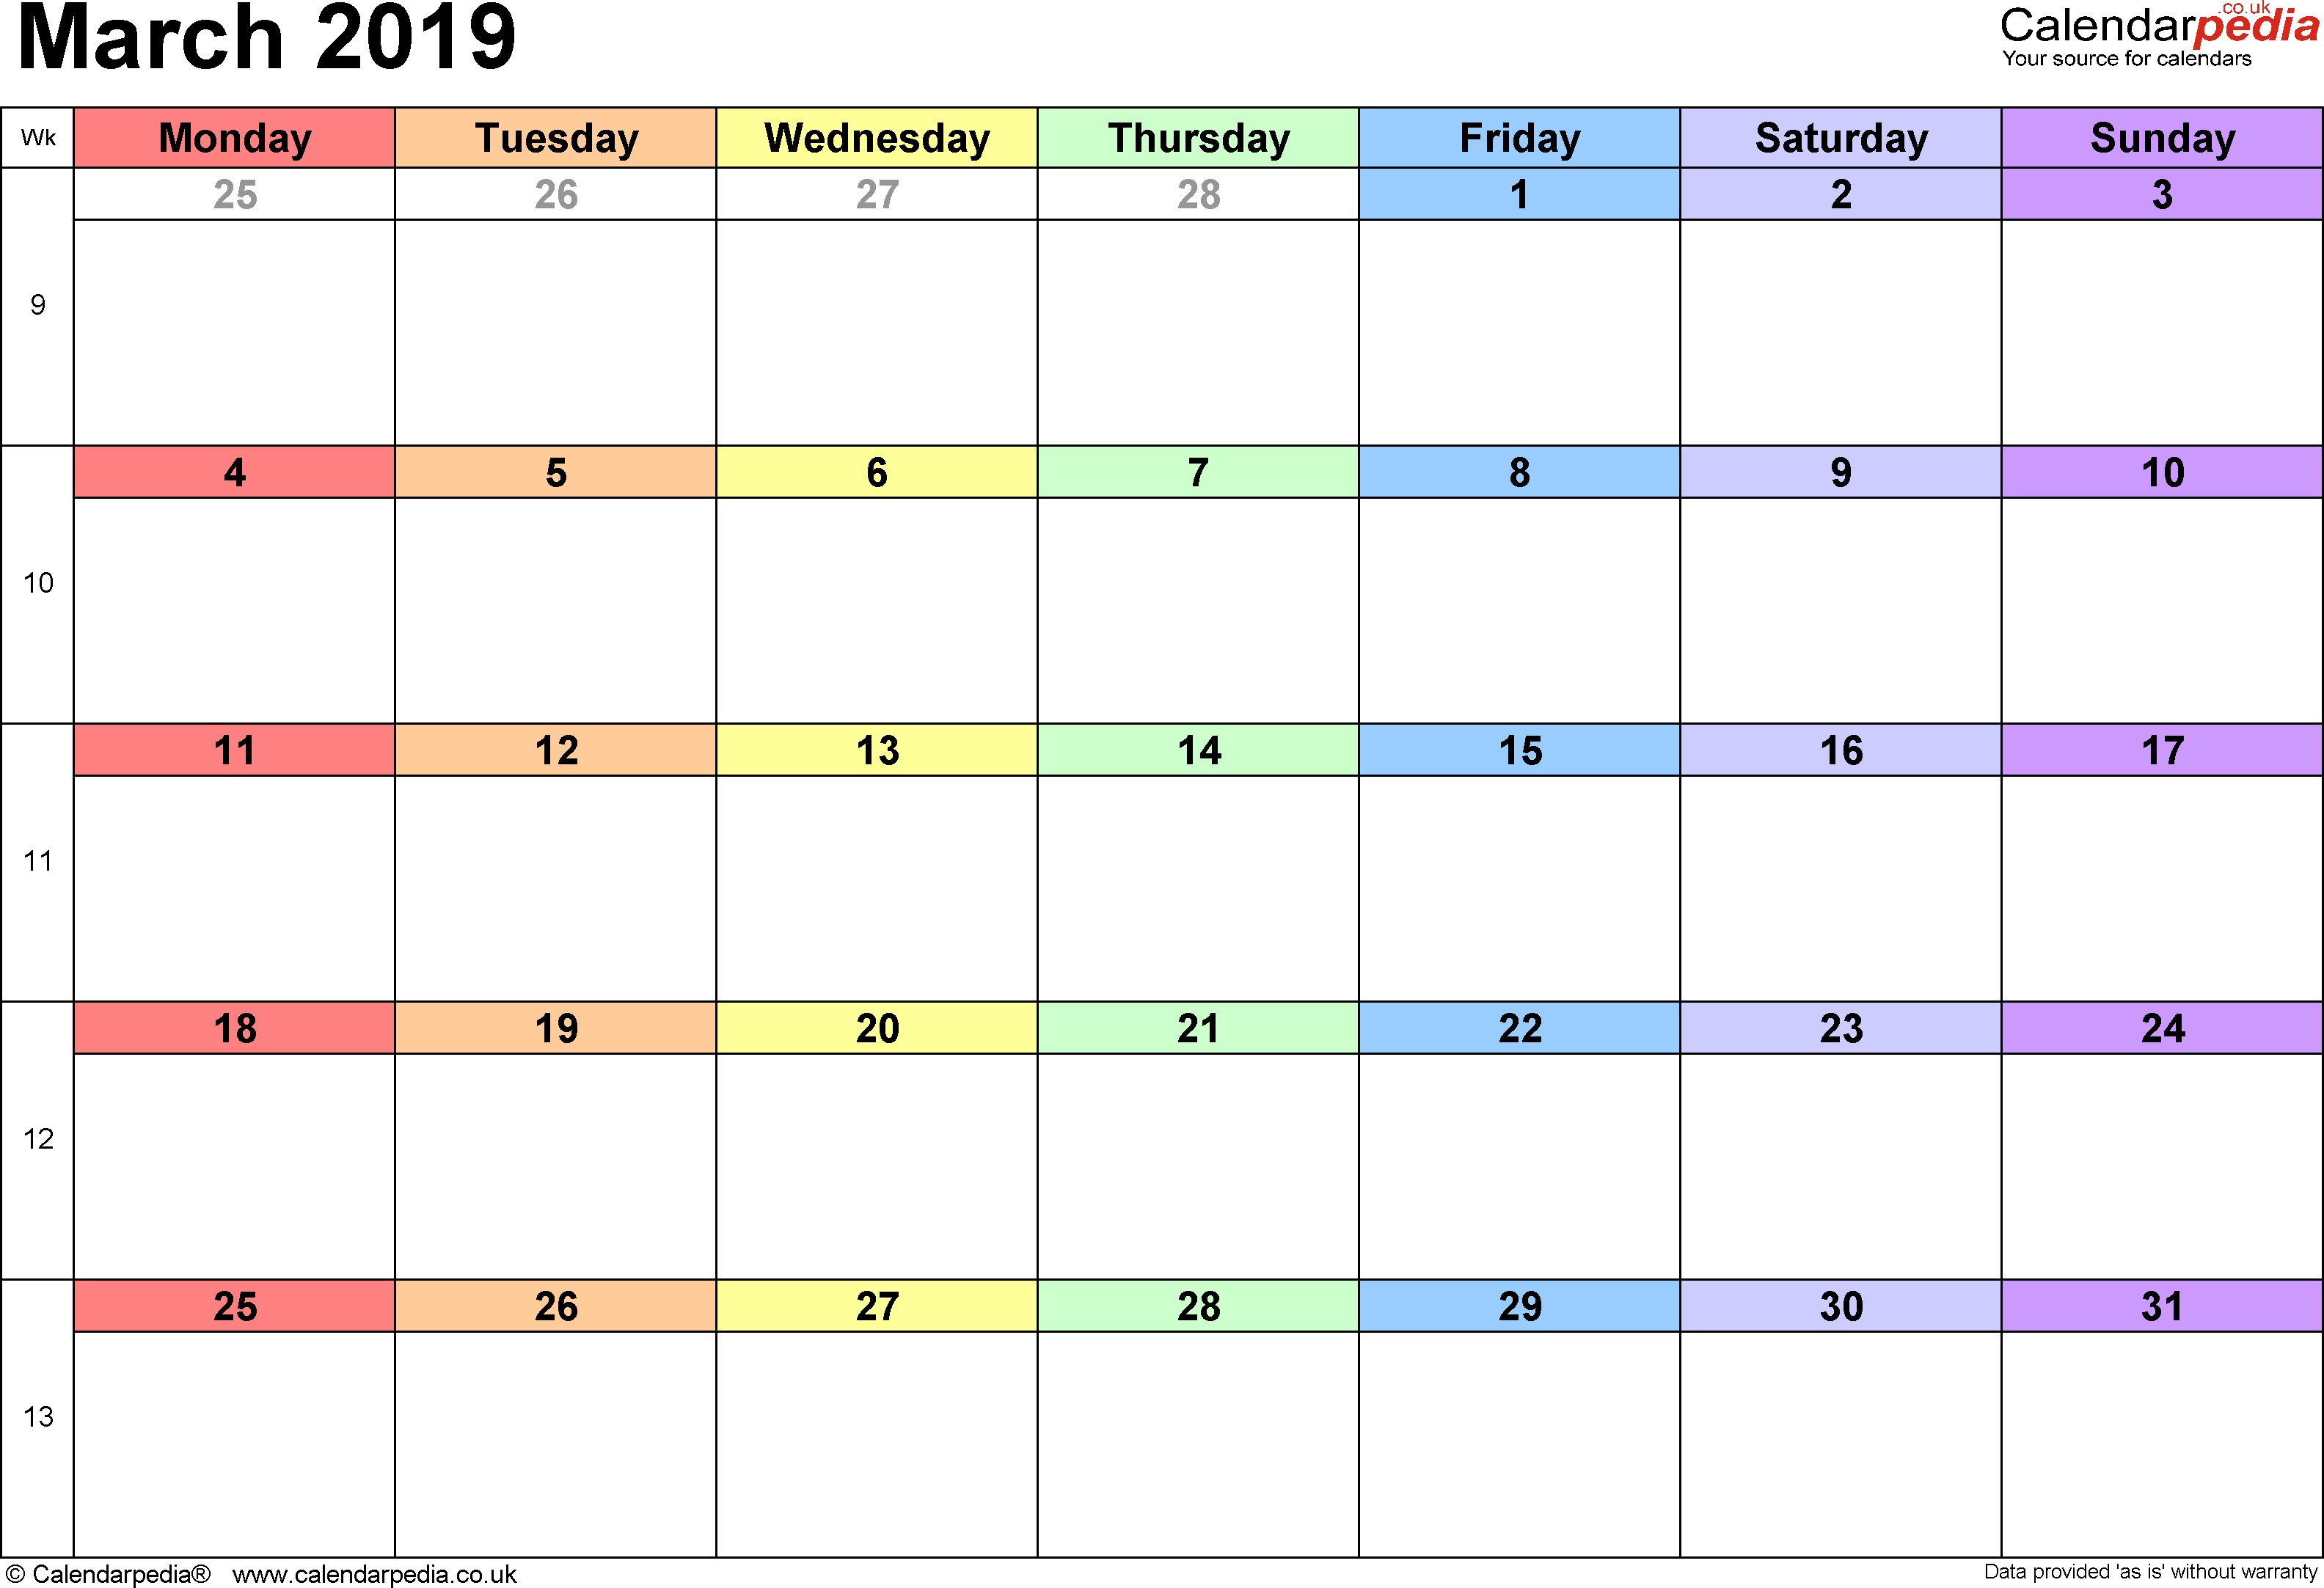 Calendar March 2019 landscape orientation 1 page with UK bank holidays and week